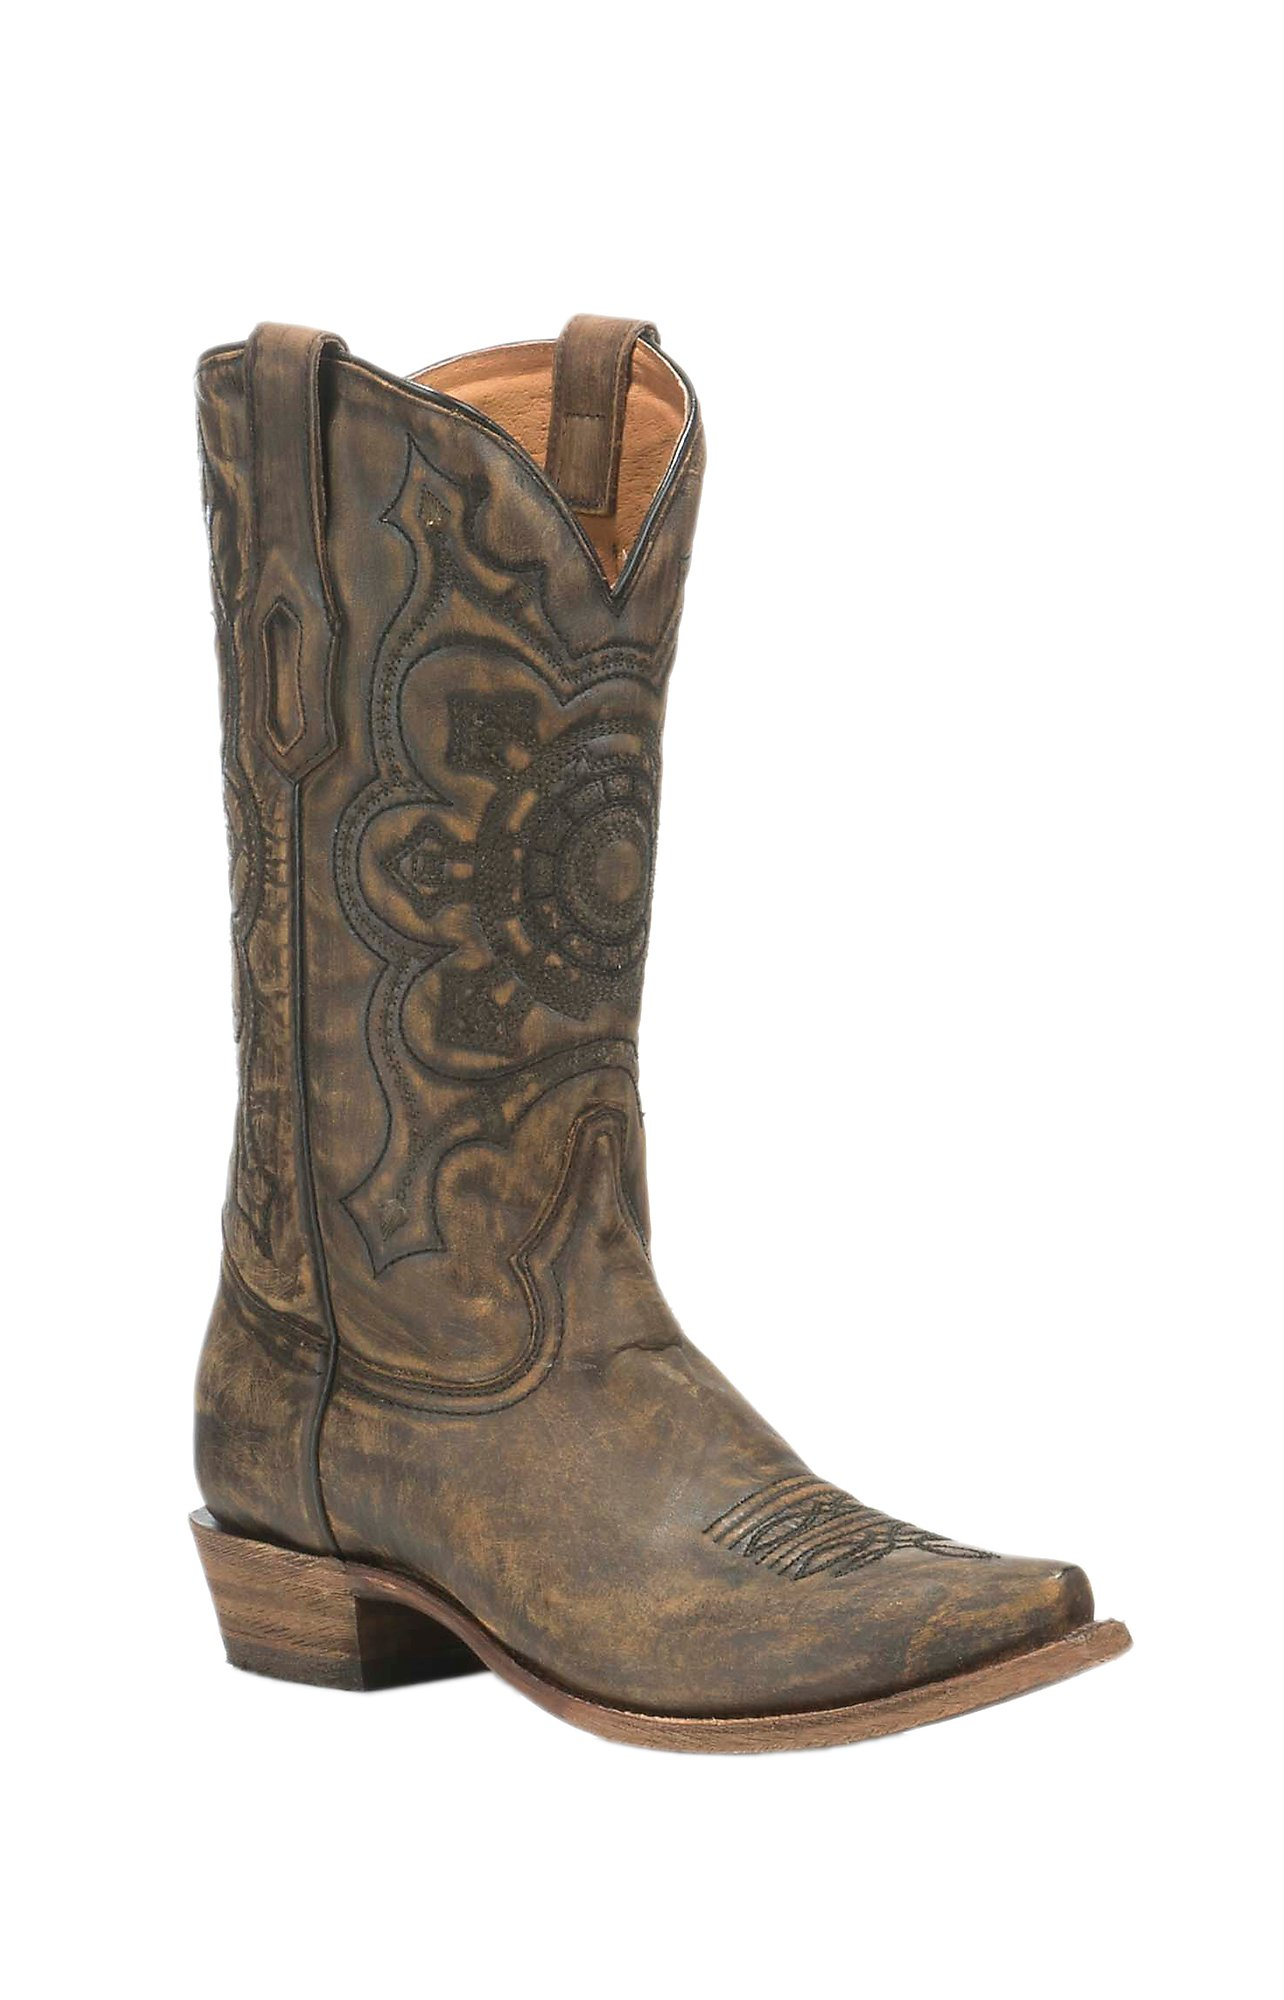 Corral Boot Company Men's Brown with Embroidery Comfort Western Snip Toe  Boots